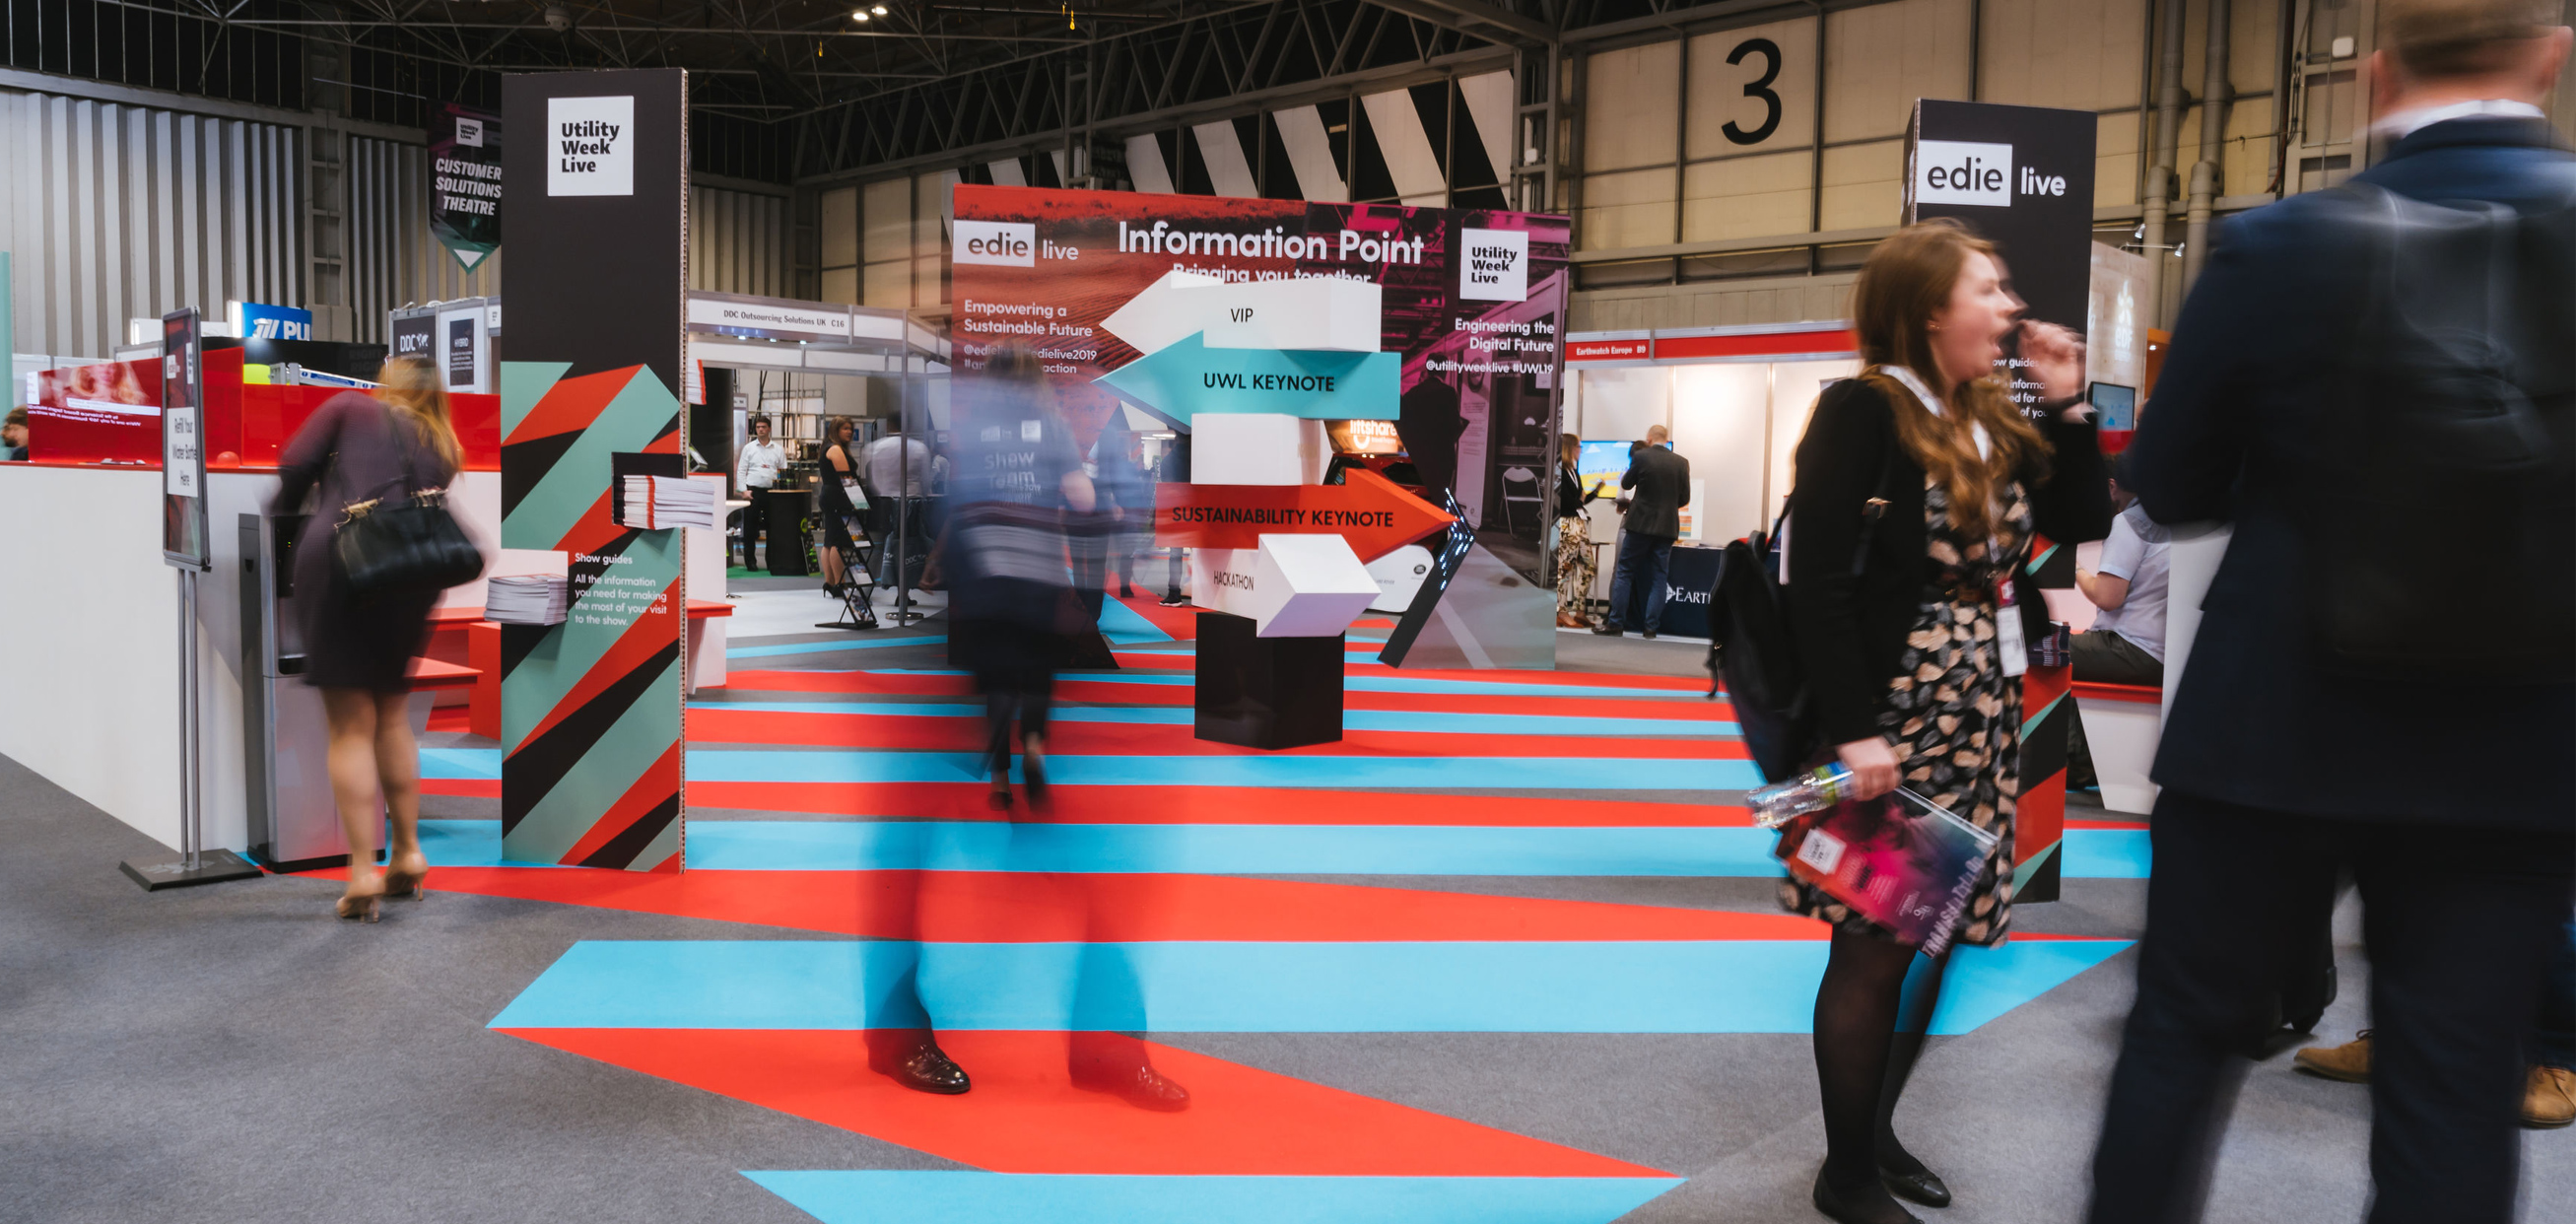 Utility Week Live 2019 Show Graphics